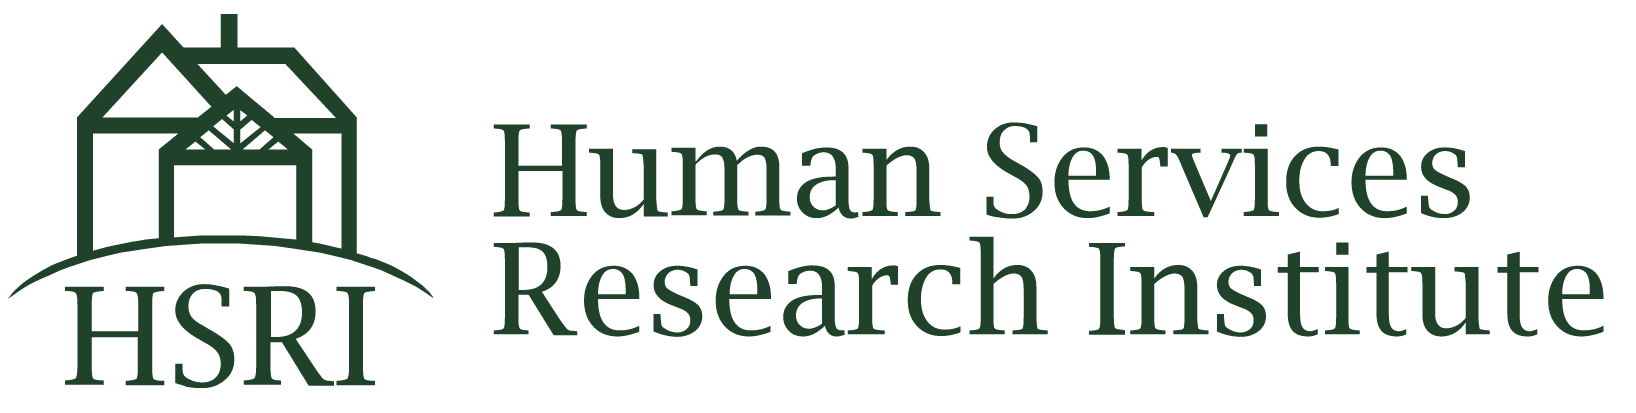 Human Services Research Institute 01